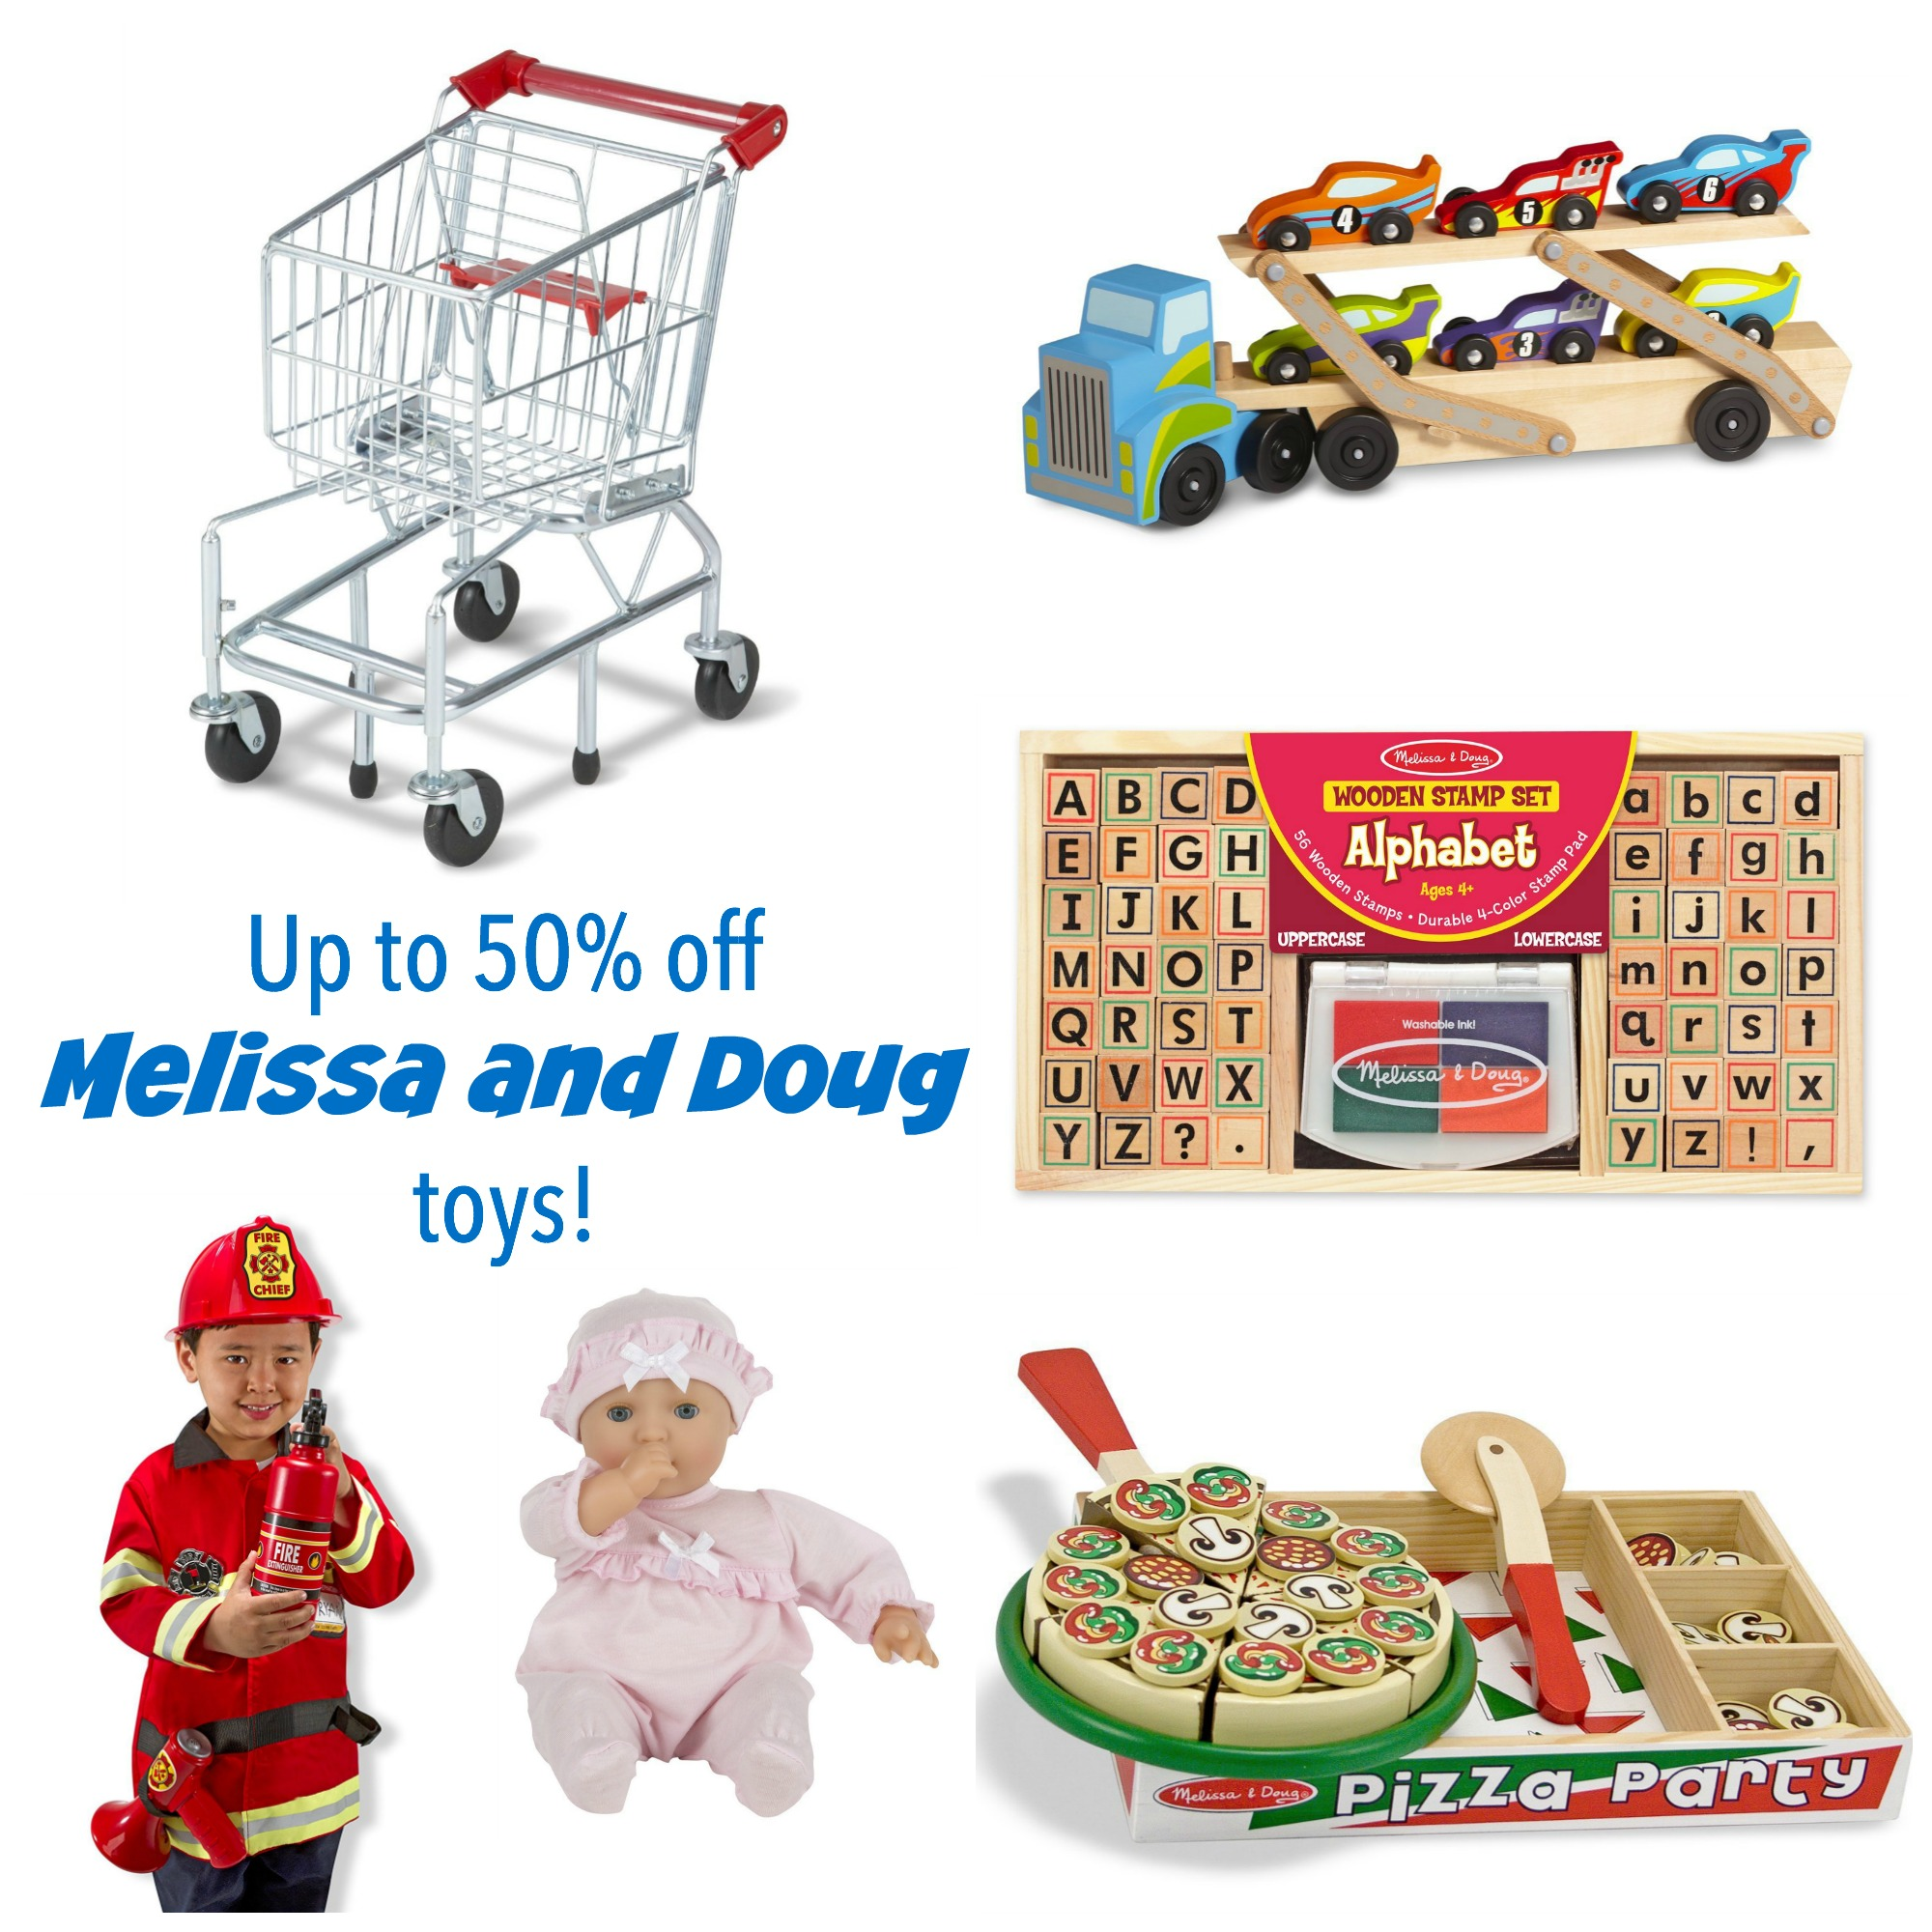 Up to 50% Off Melissa and Doug Toys!